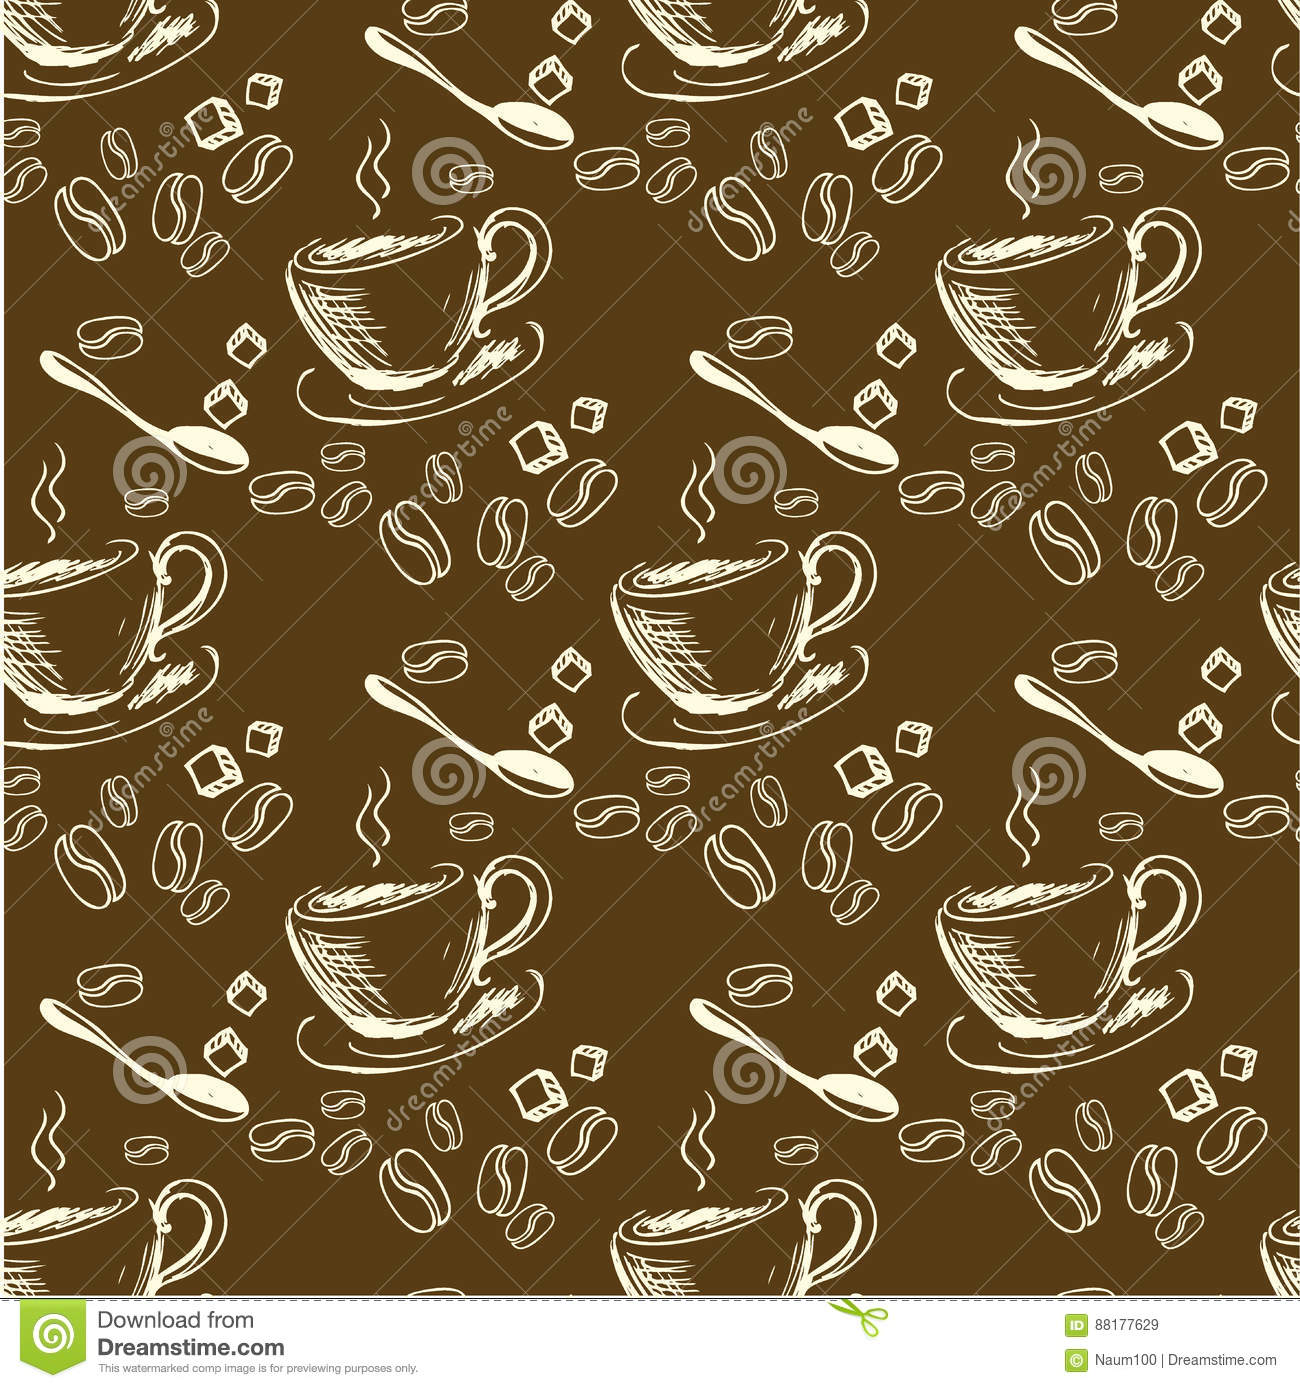 seamless doodle coffee pattern - photo #4